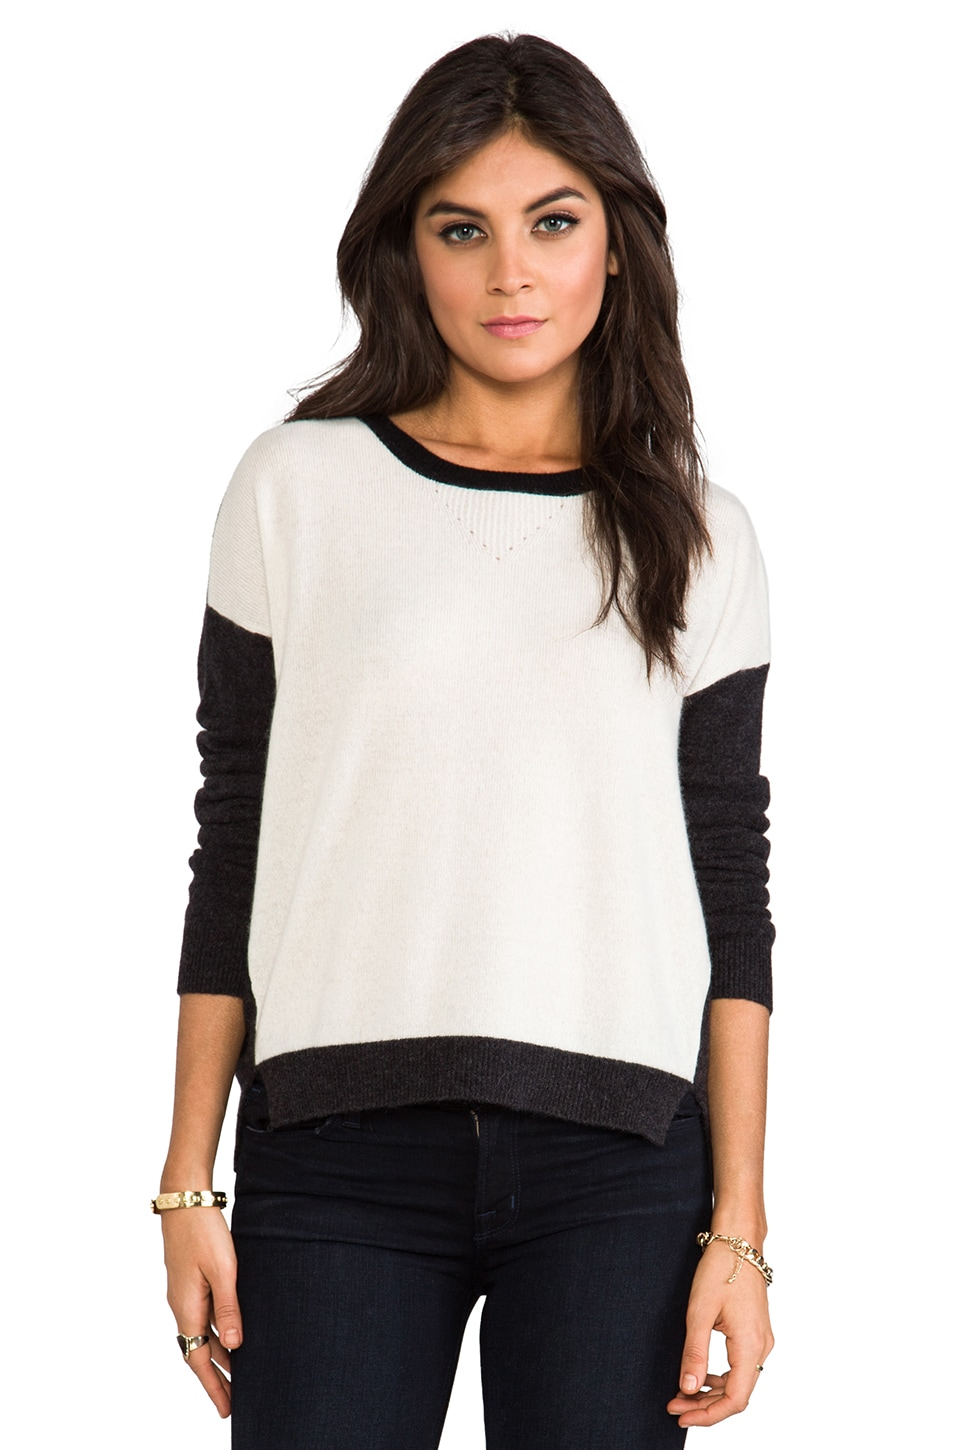 Velvet by Graham & Spencer Velvet Jamila Cashmere Sweater in Milk & Charcoal